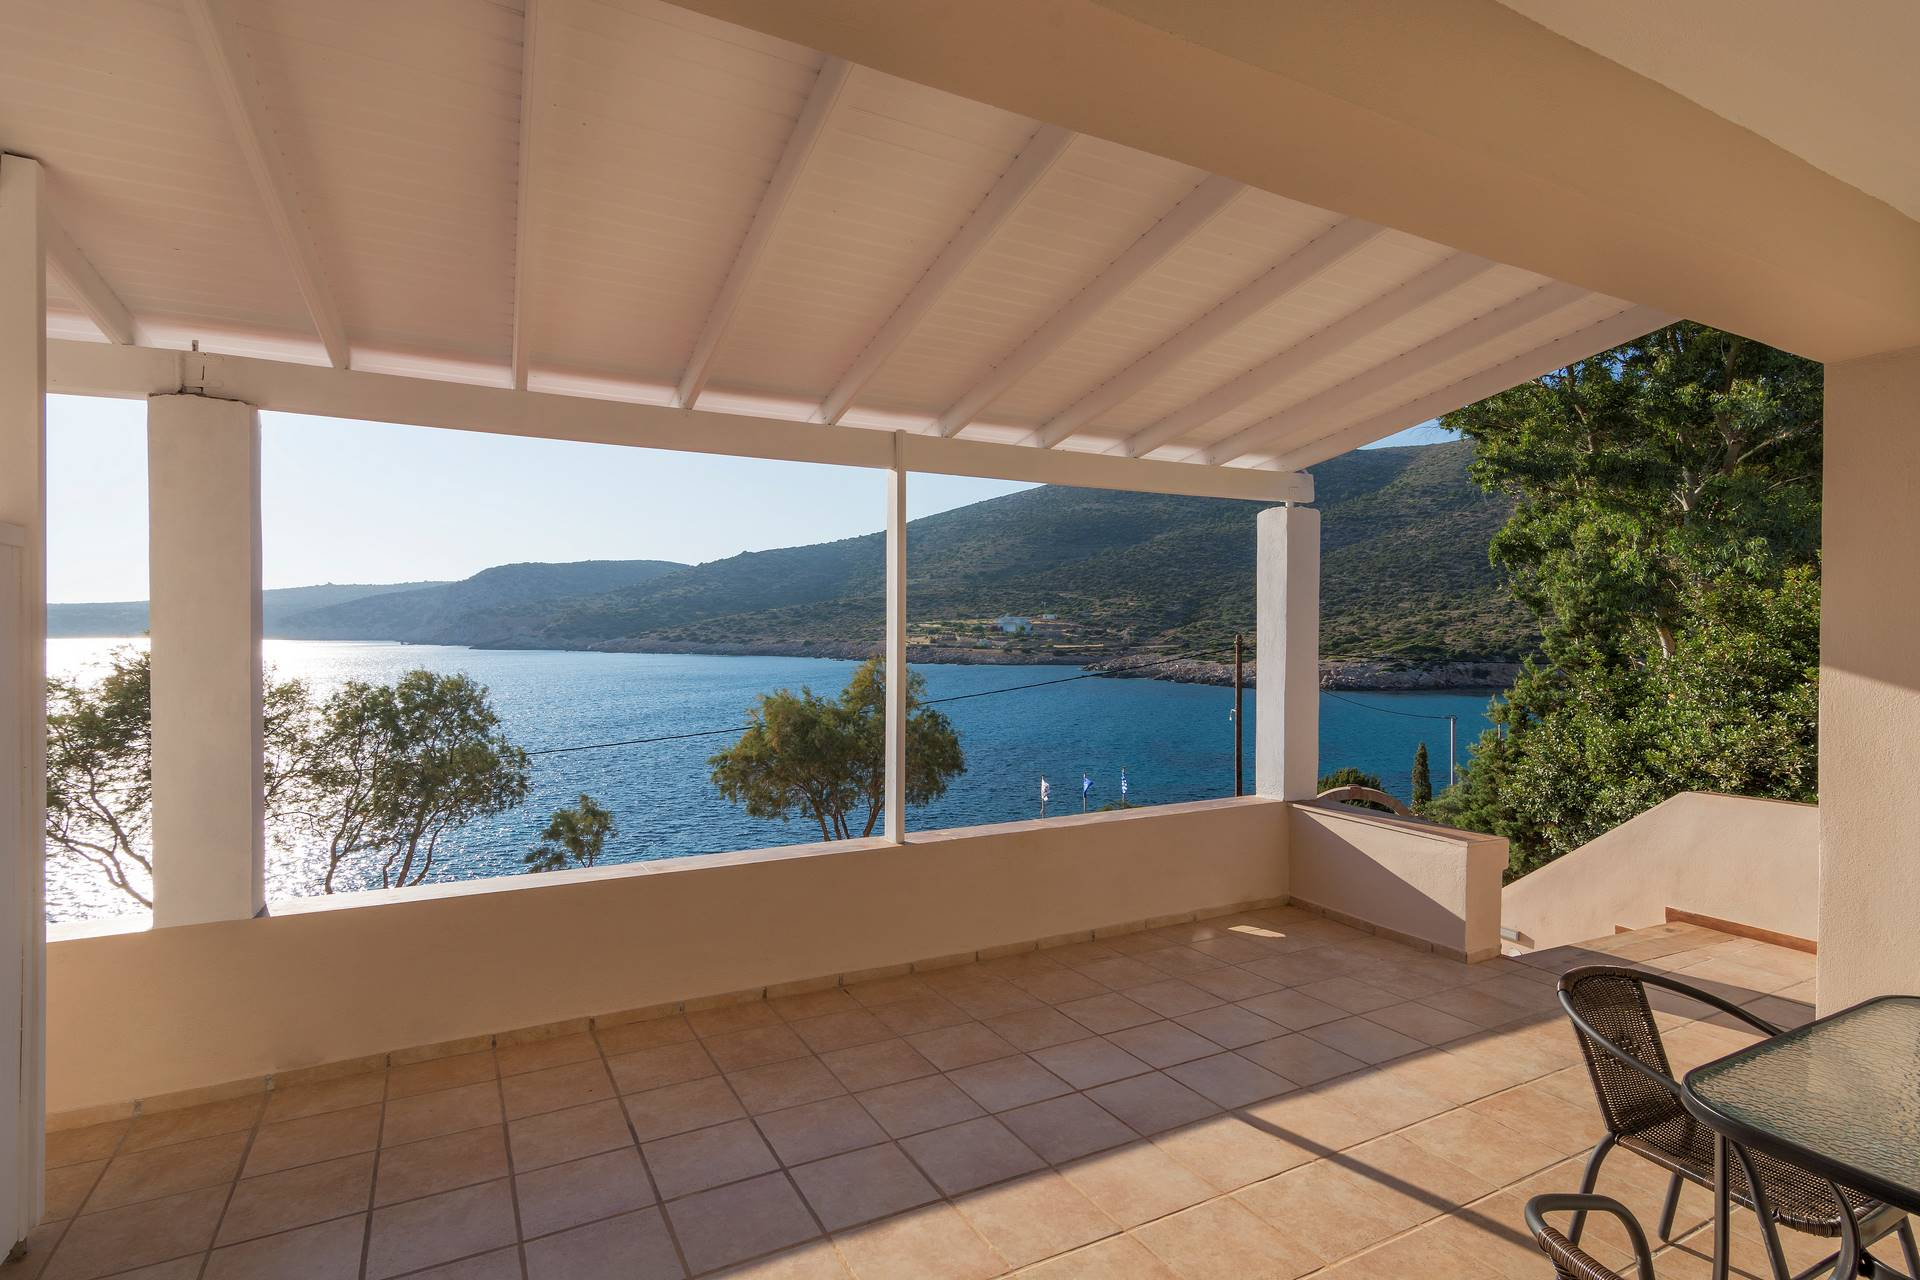 N2 - Triple Room - One bedroom and sea view balcony